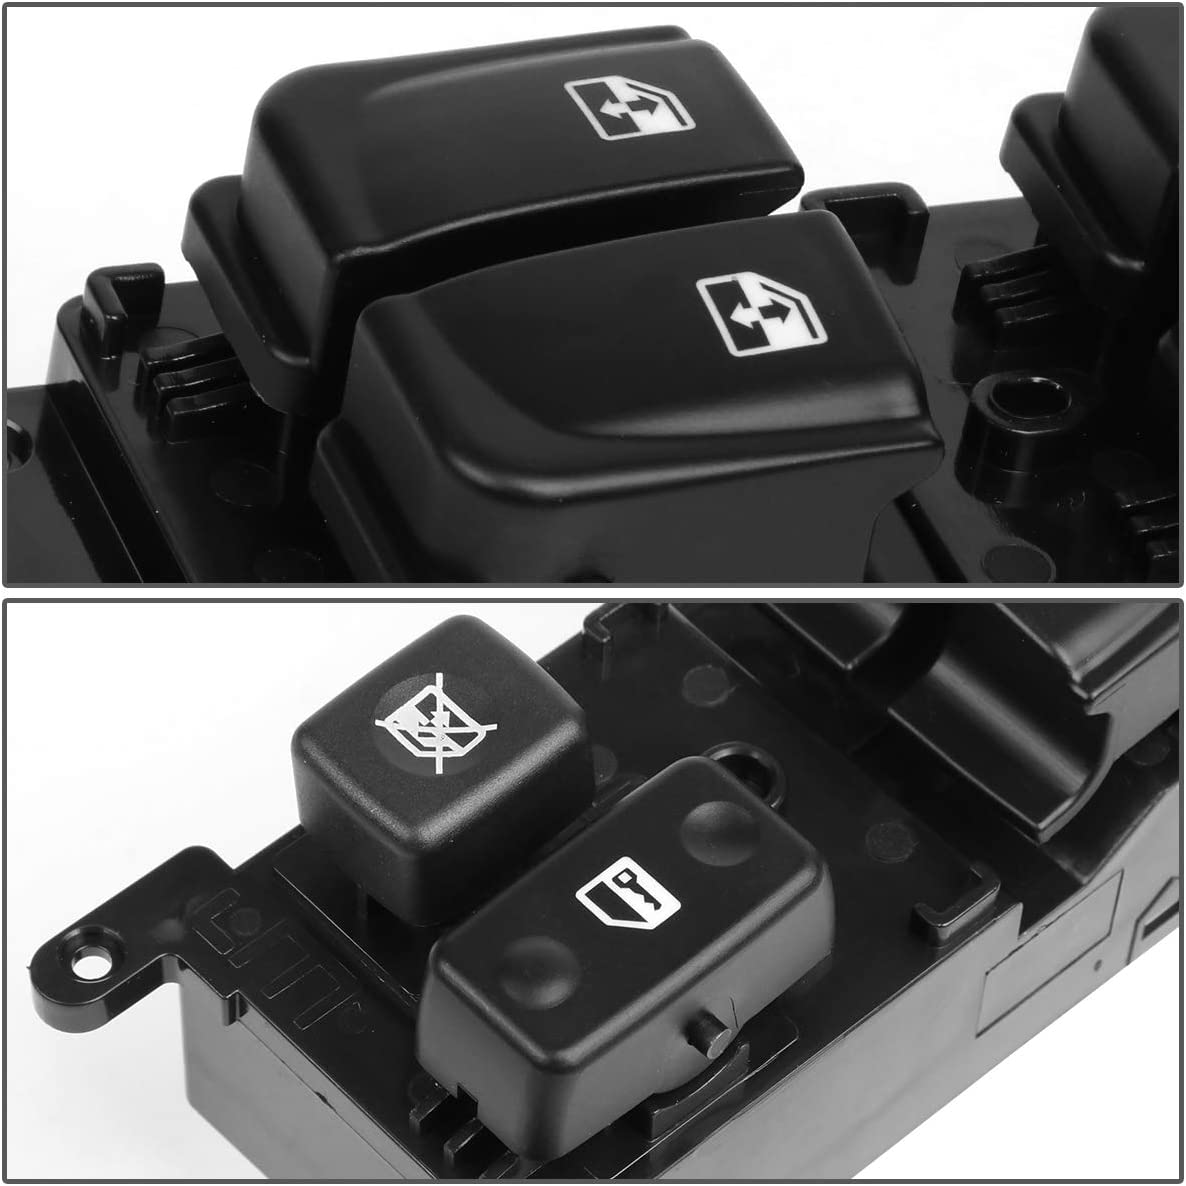 DNA Motoring WSW-035 Factory Style Driver Side Master Power Window Lifter Switch For HYUNDAI SONATA 2005-2007 Black